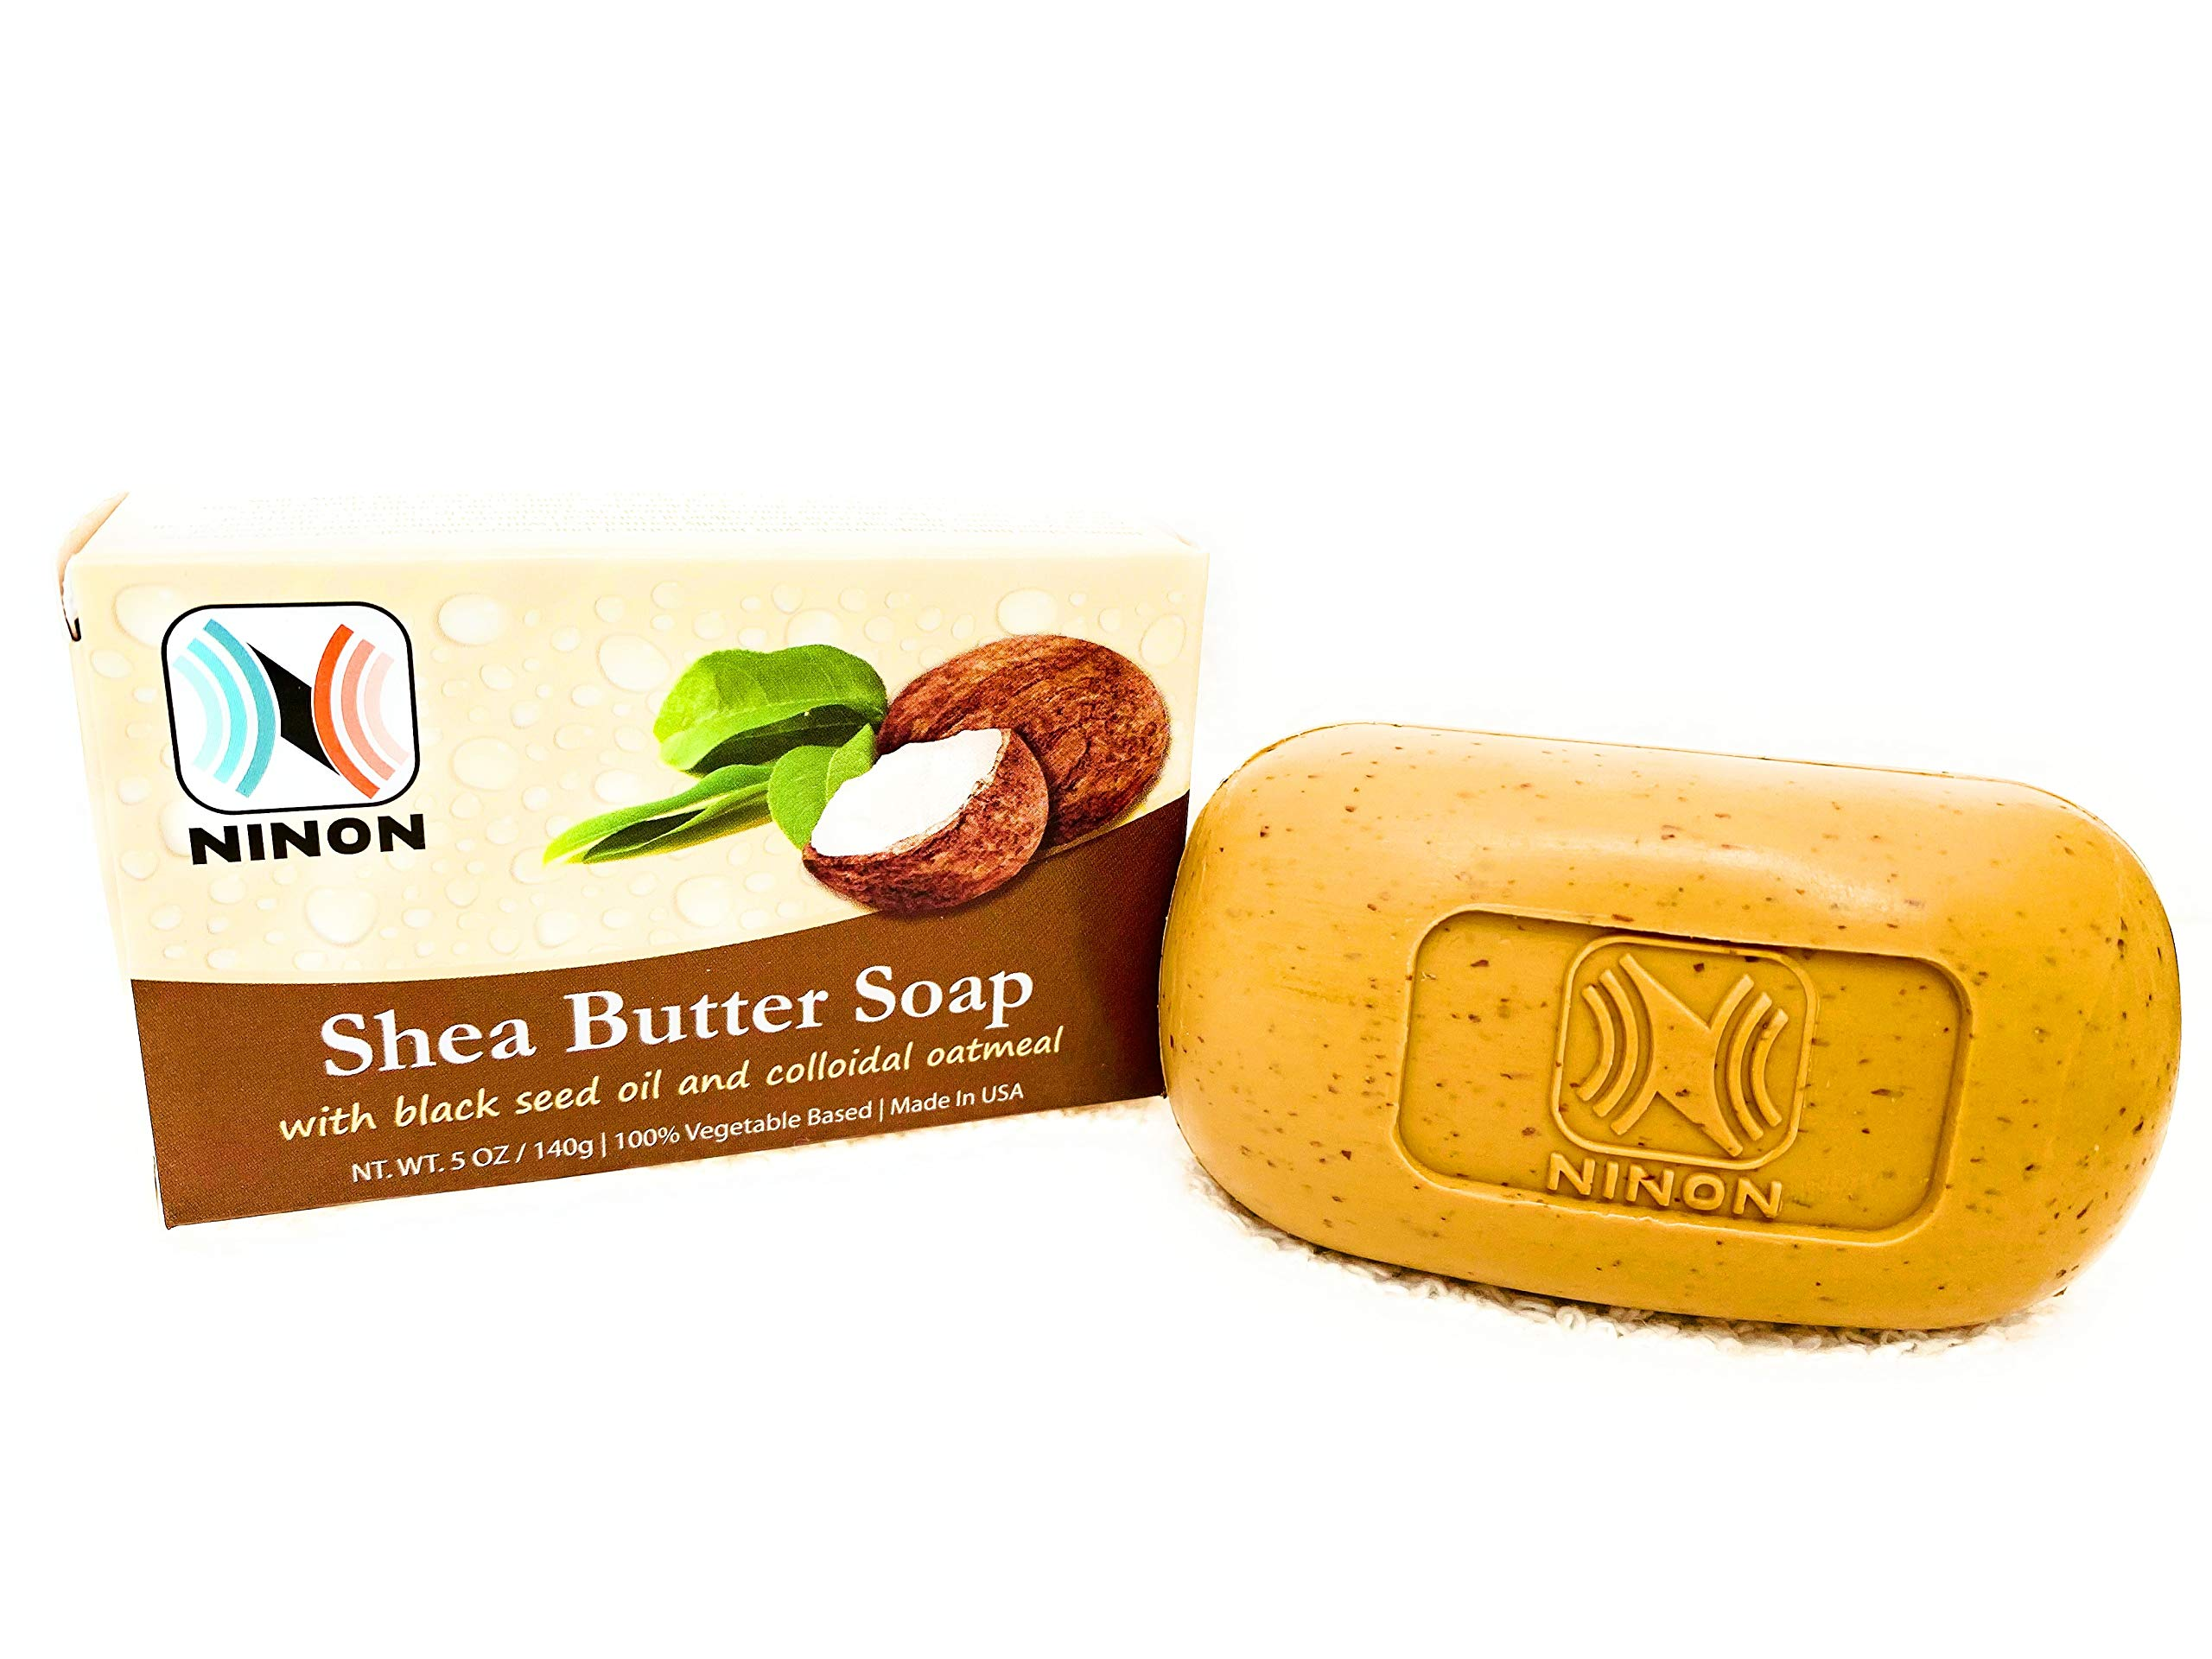 Ninon Shea butter soap with black seed oil & Collodal oatmeal - 6 Pack